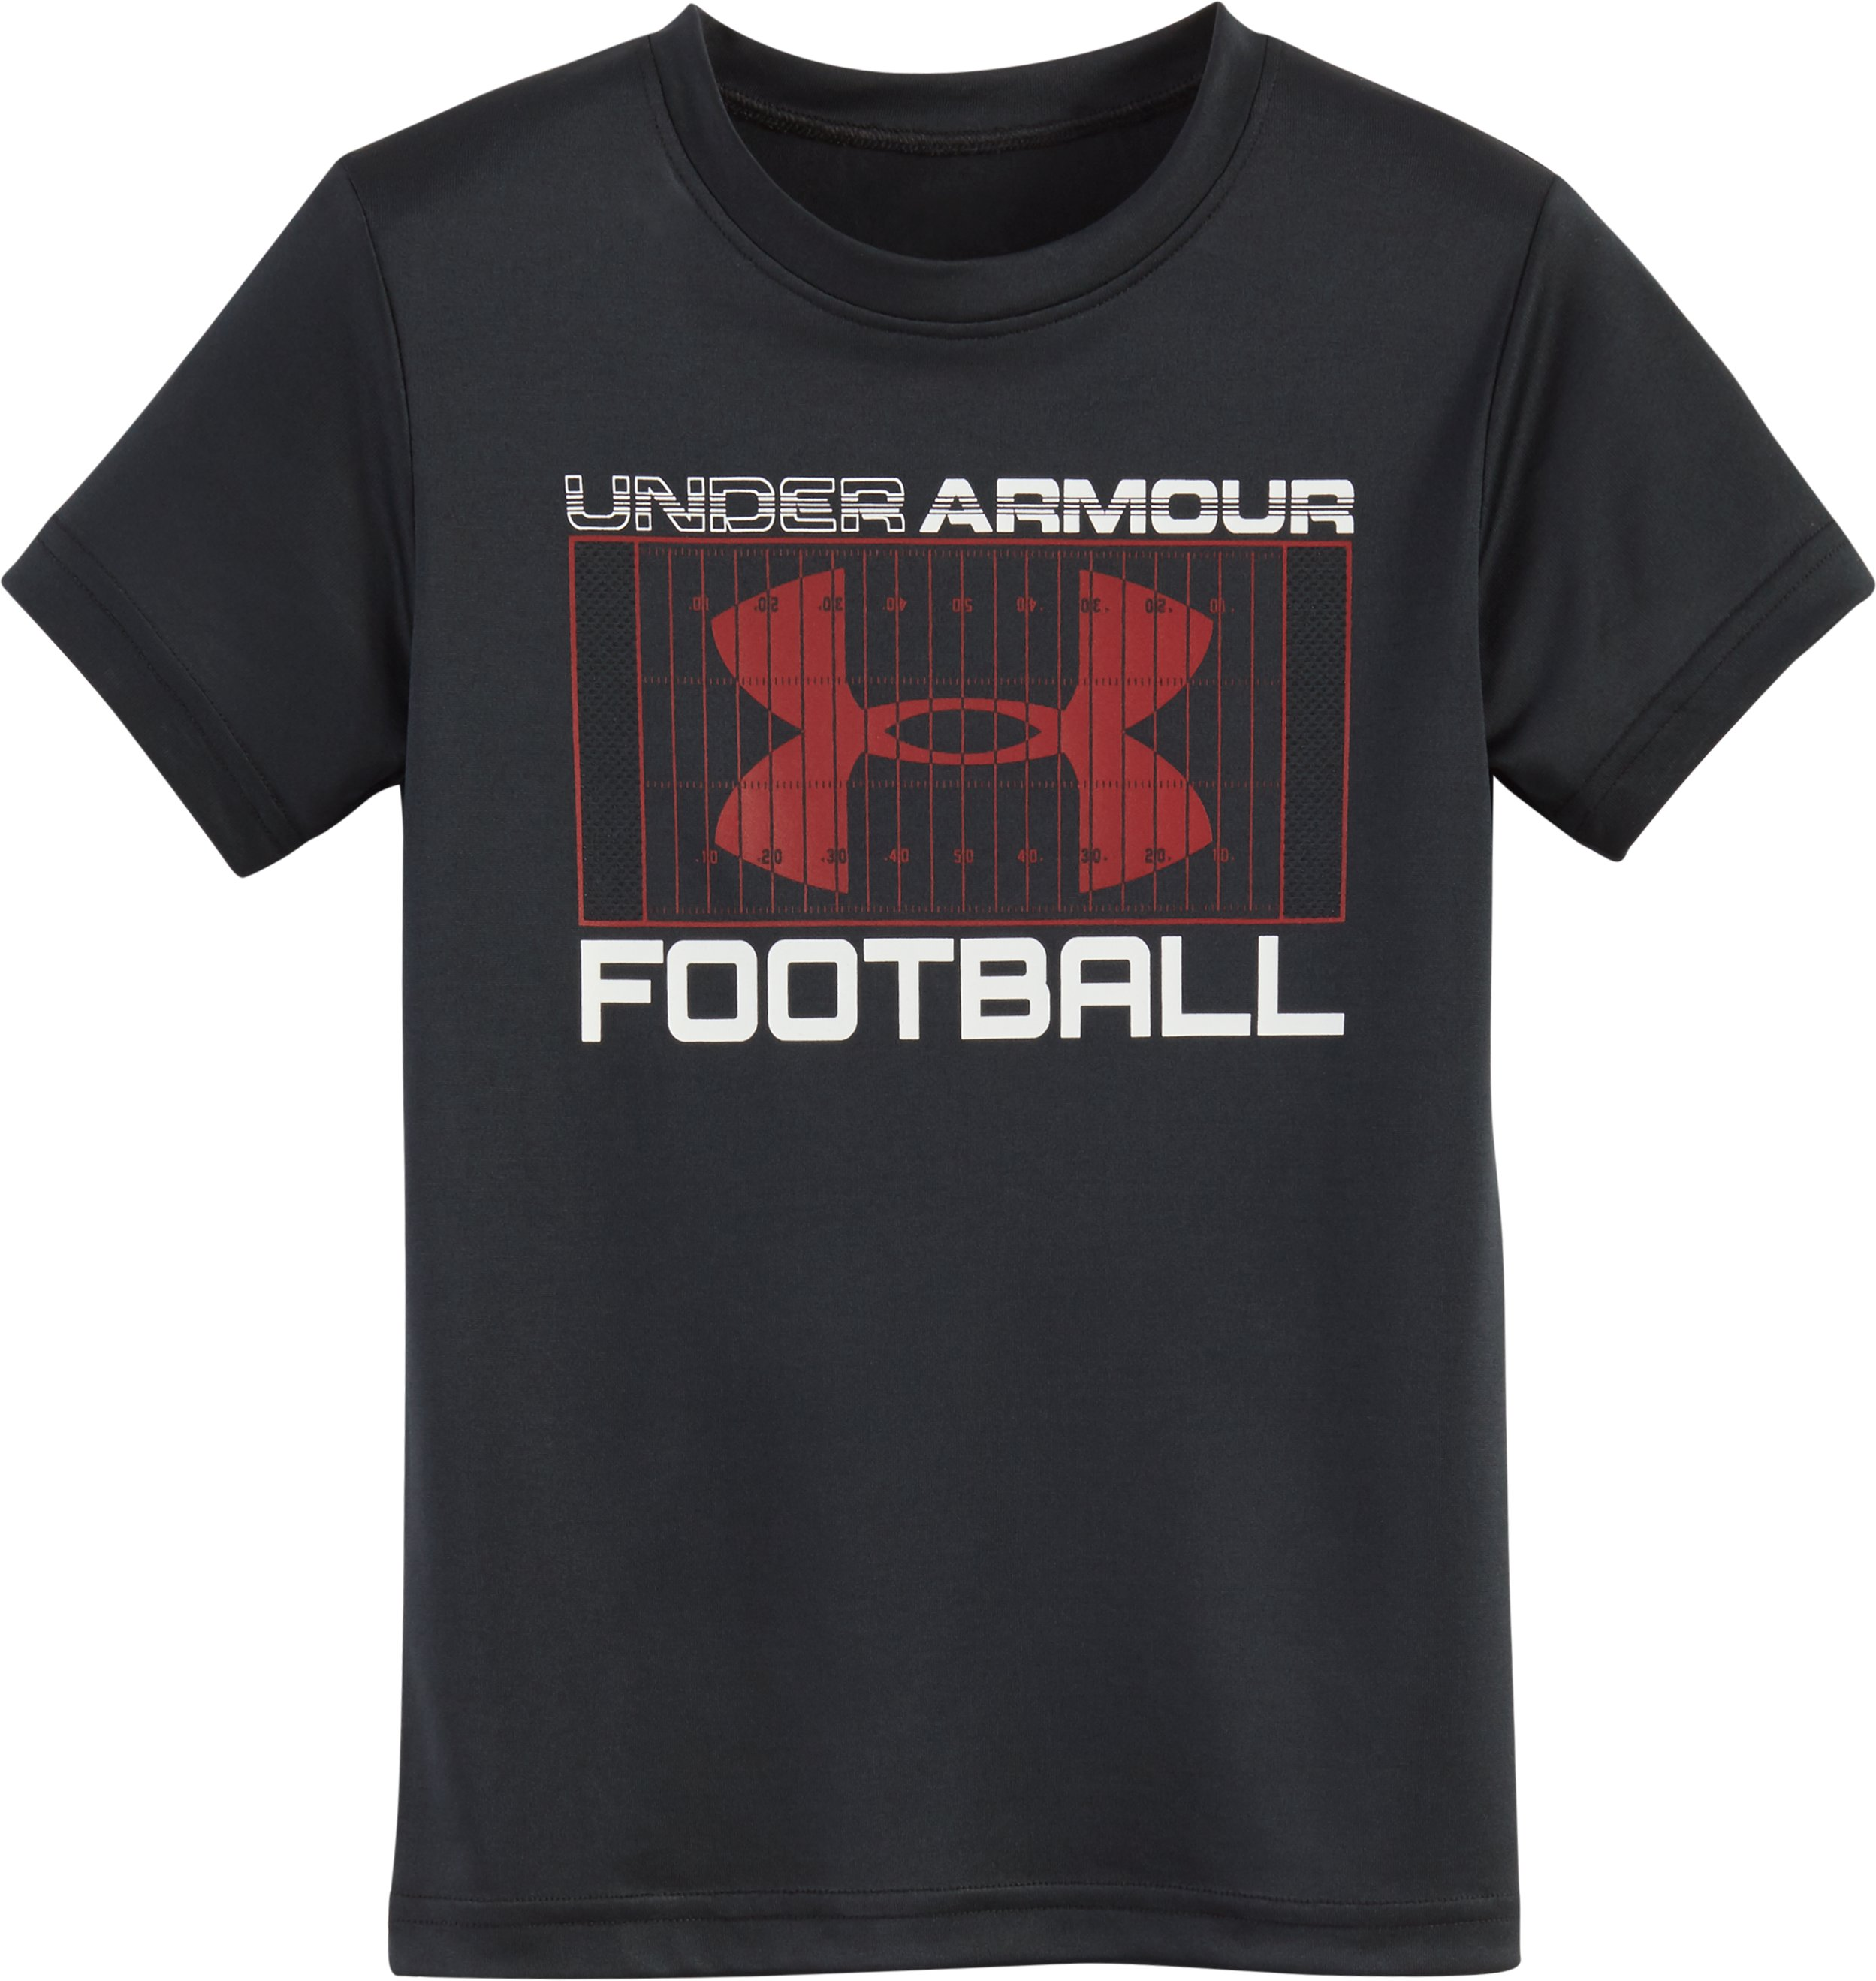 Boys' Pre-School UA Football Grid Short Sleeve T-Shirt, Black